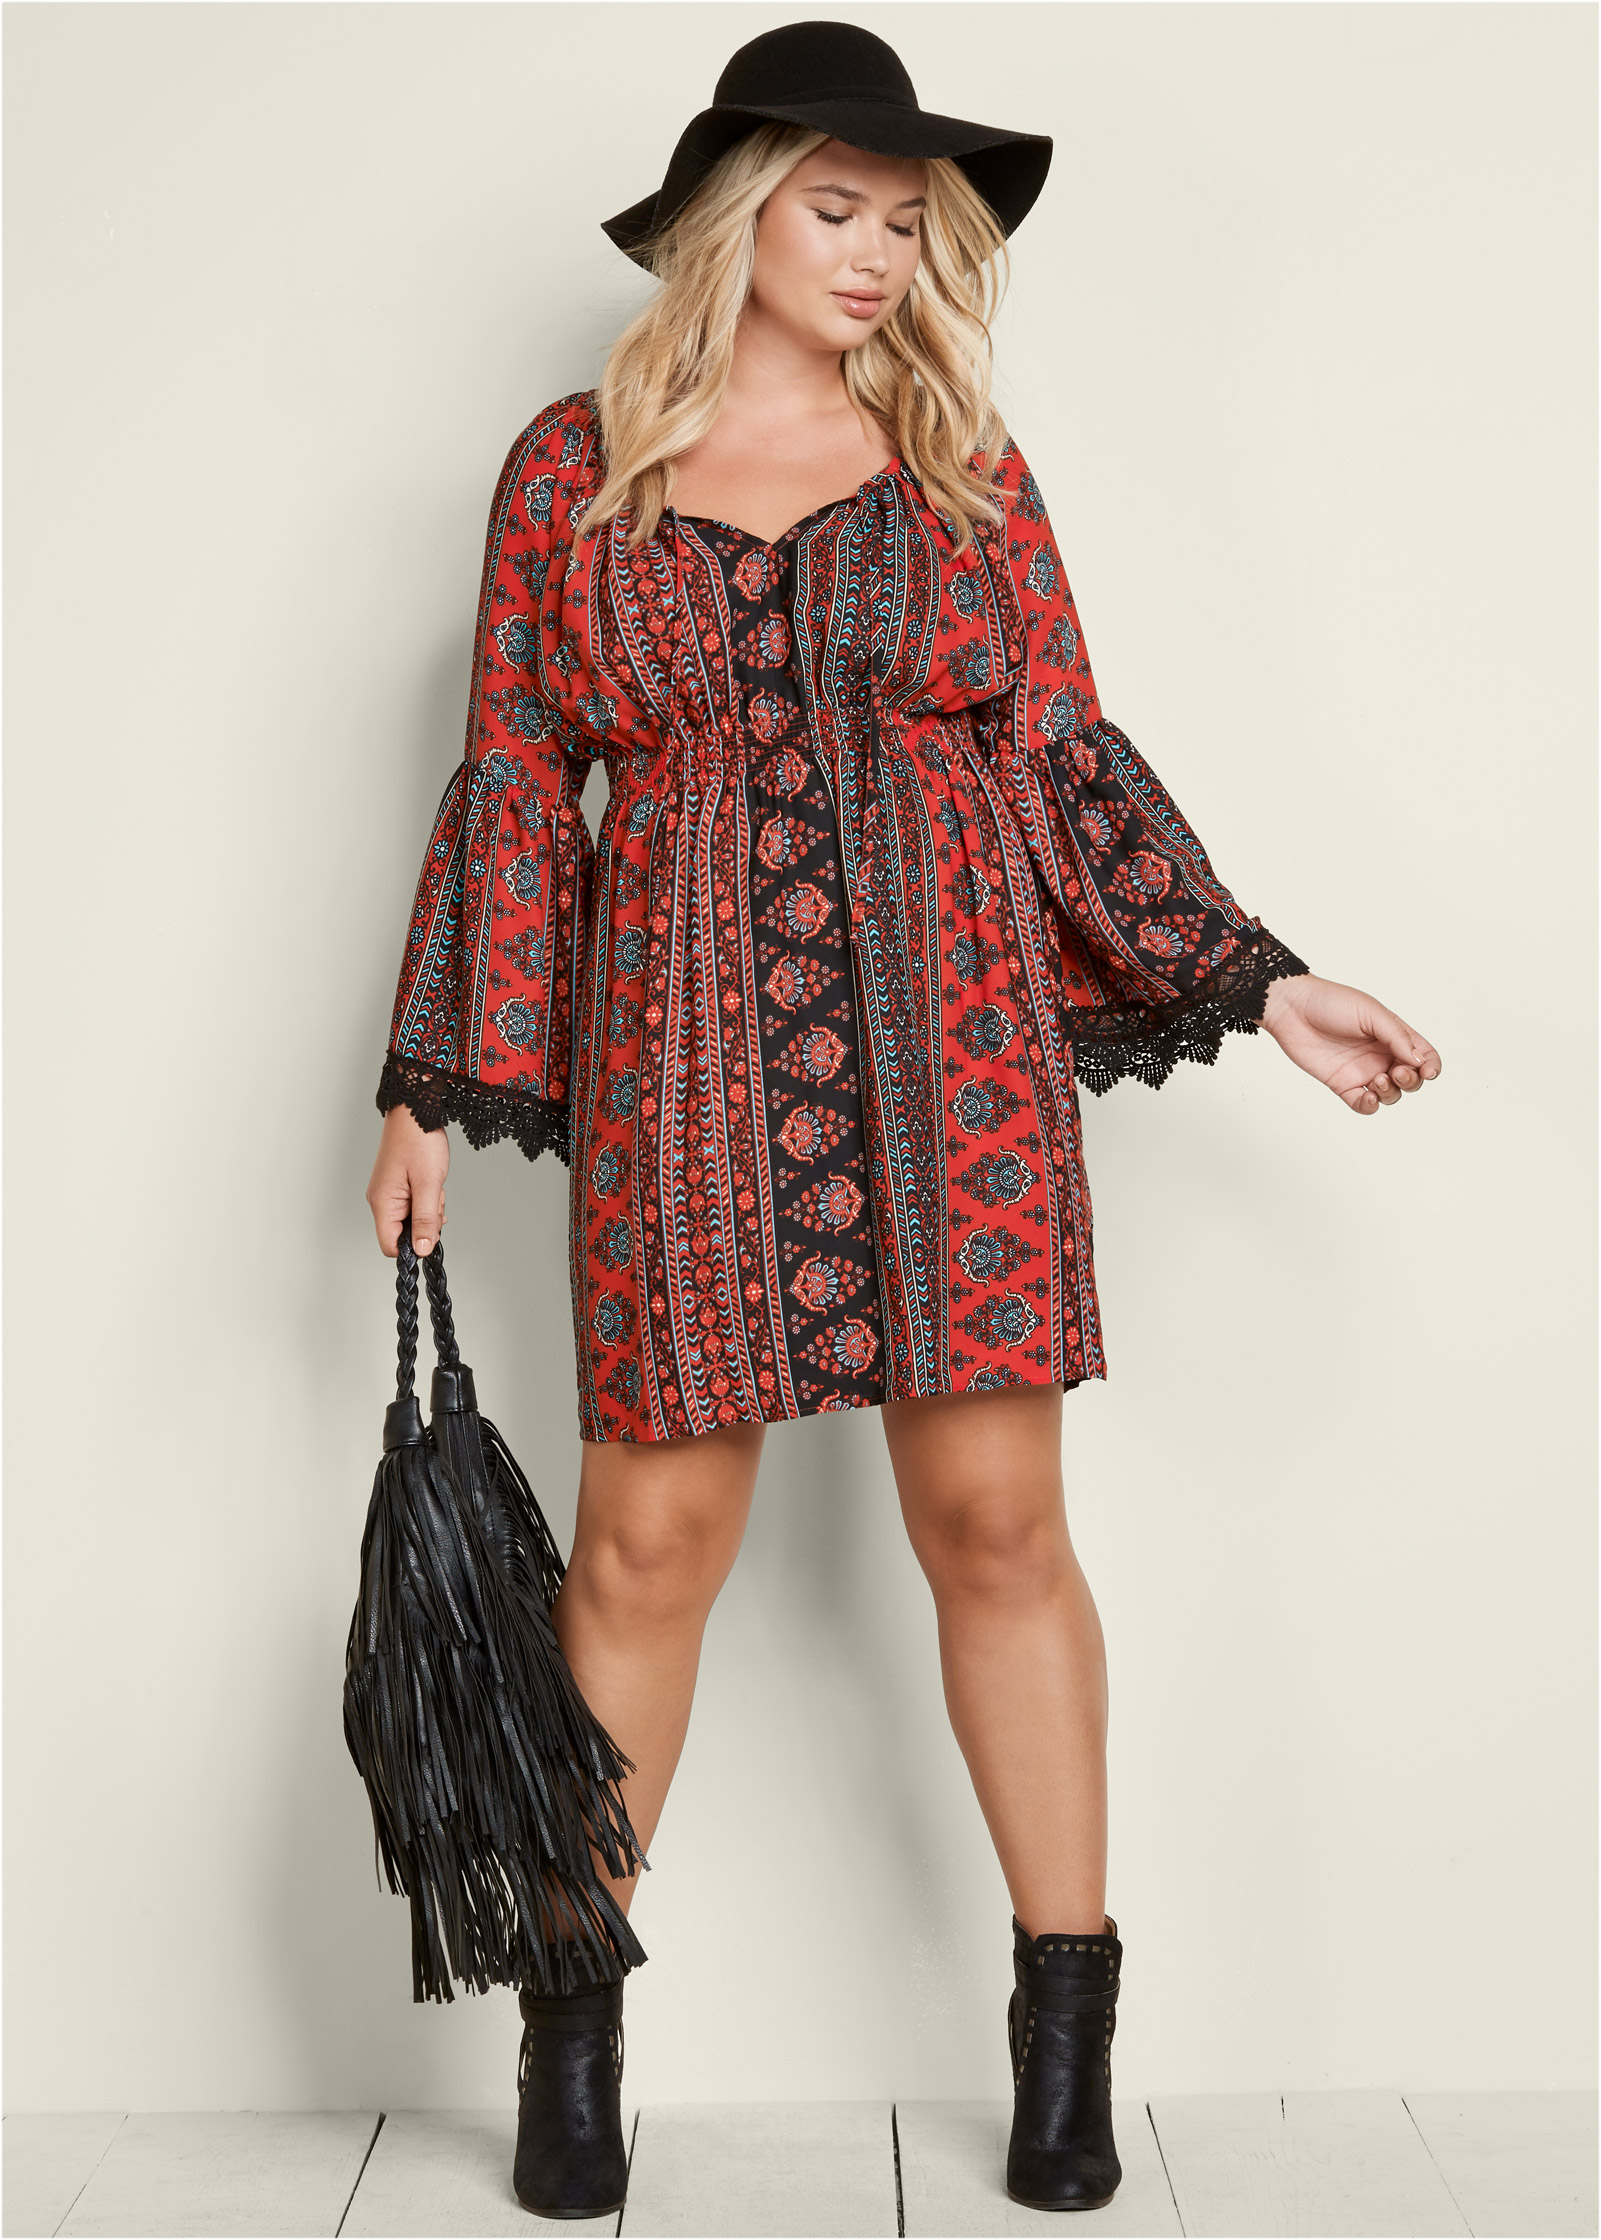 Boho Plus Size Dresses_Plus Size Dresses_dressesss